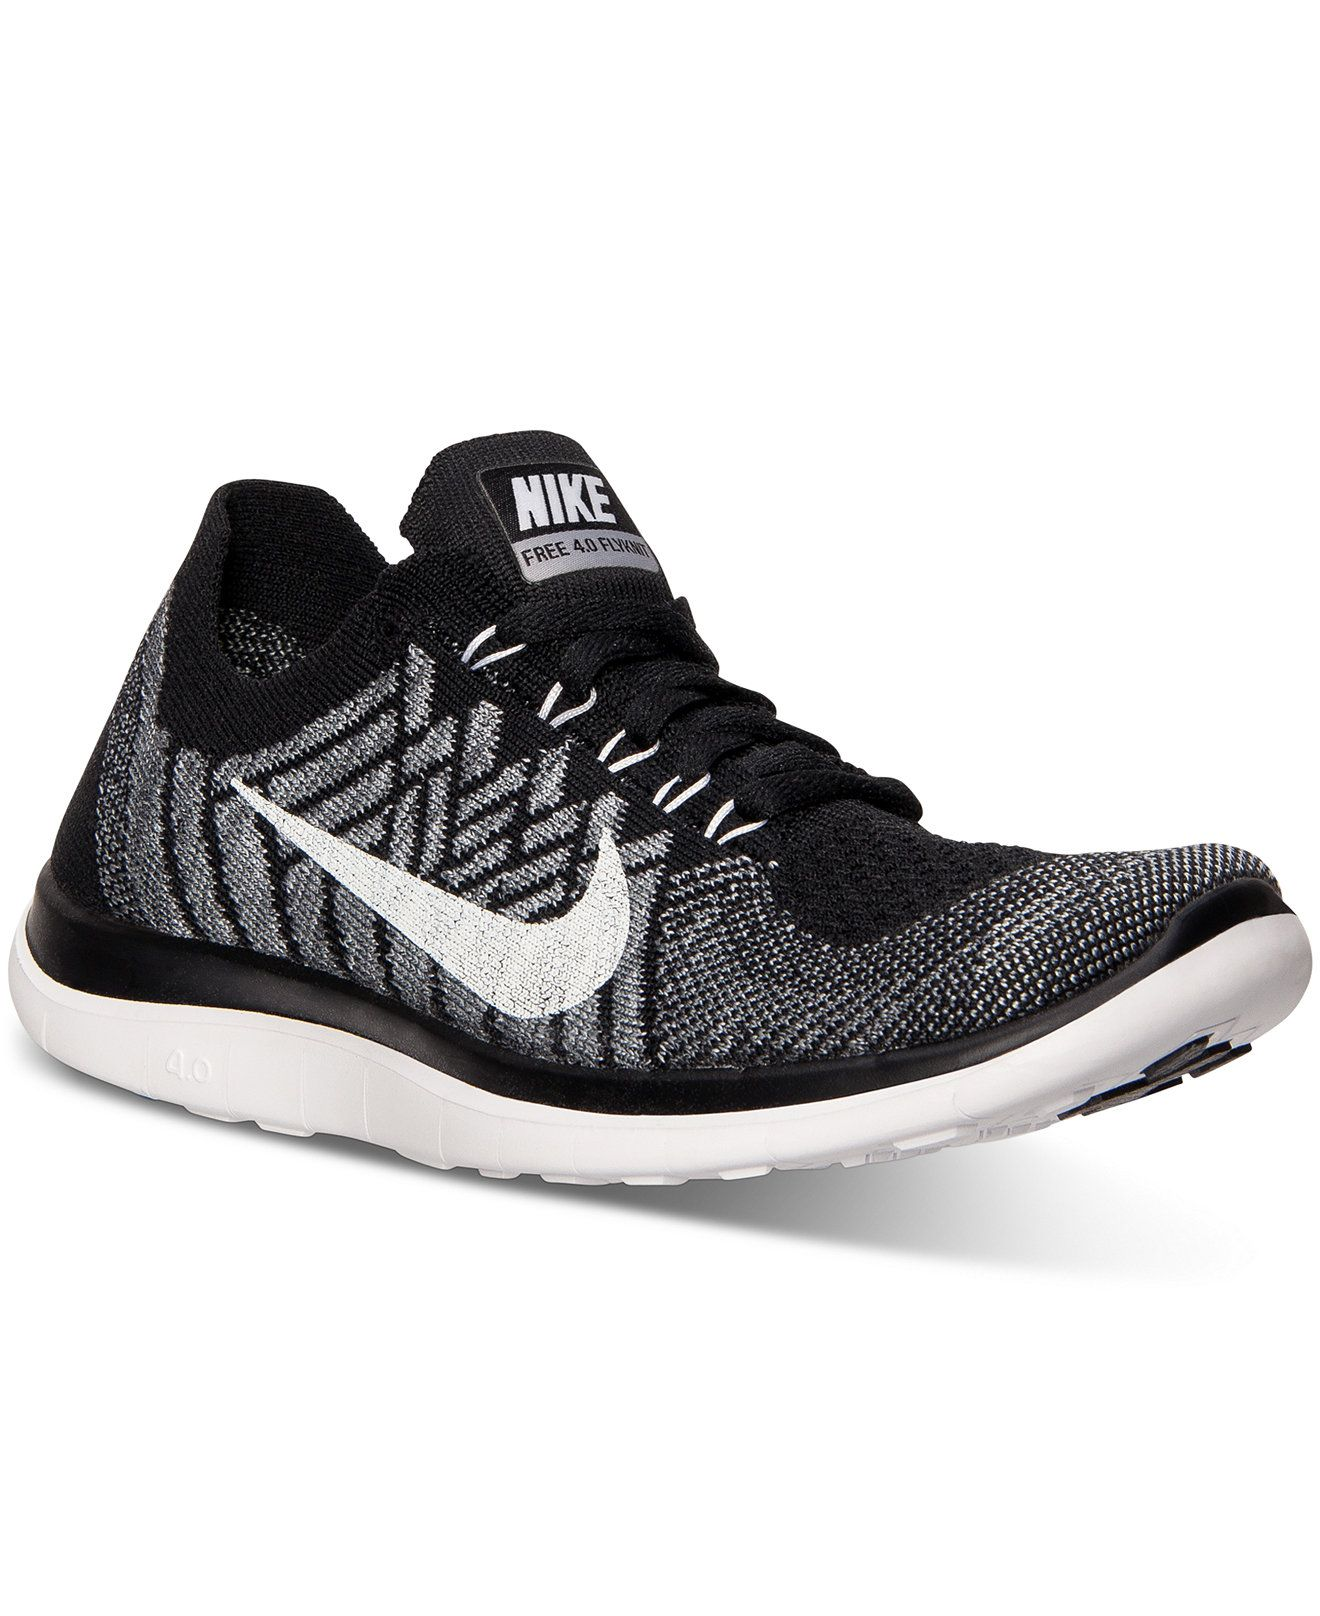 Nike Women s Free Flyknit 4.0 Running Sneakers from Finish Line - Finish  Line Athletic Shoes - Shoes - Macy s 838099ef27